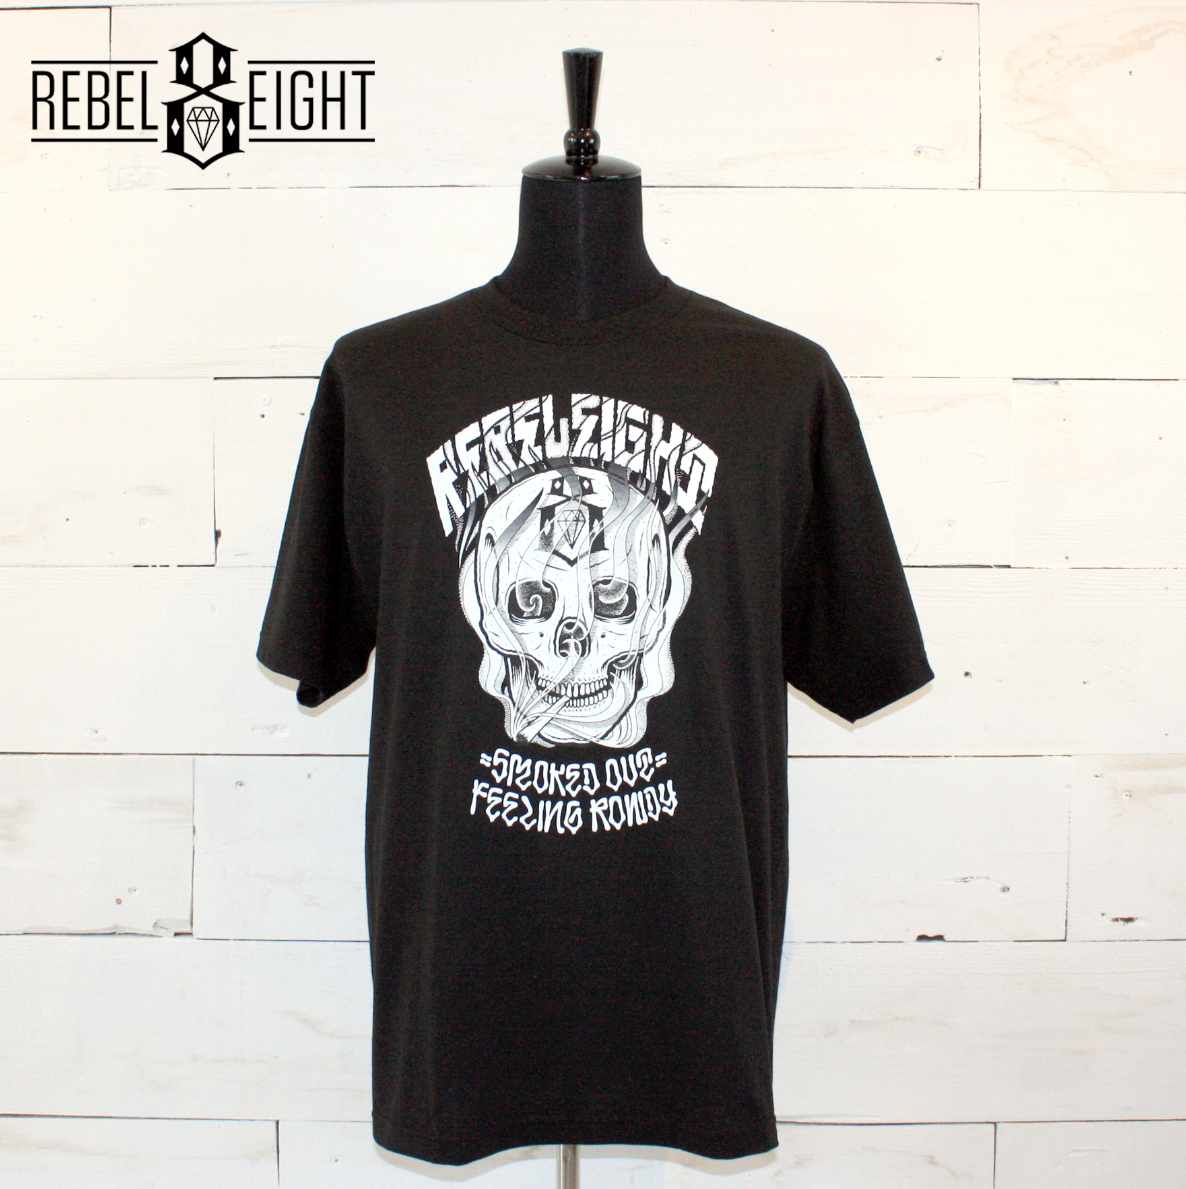 Smoked Out Feeling Rowdy/REBEL8